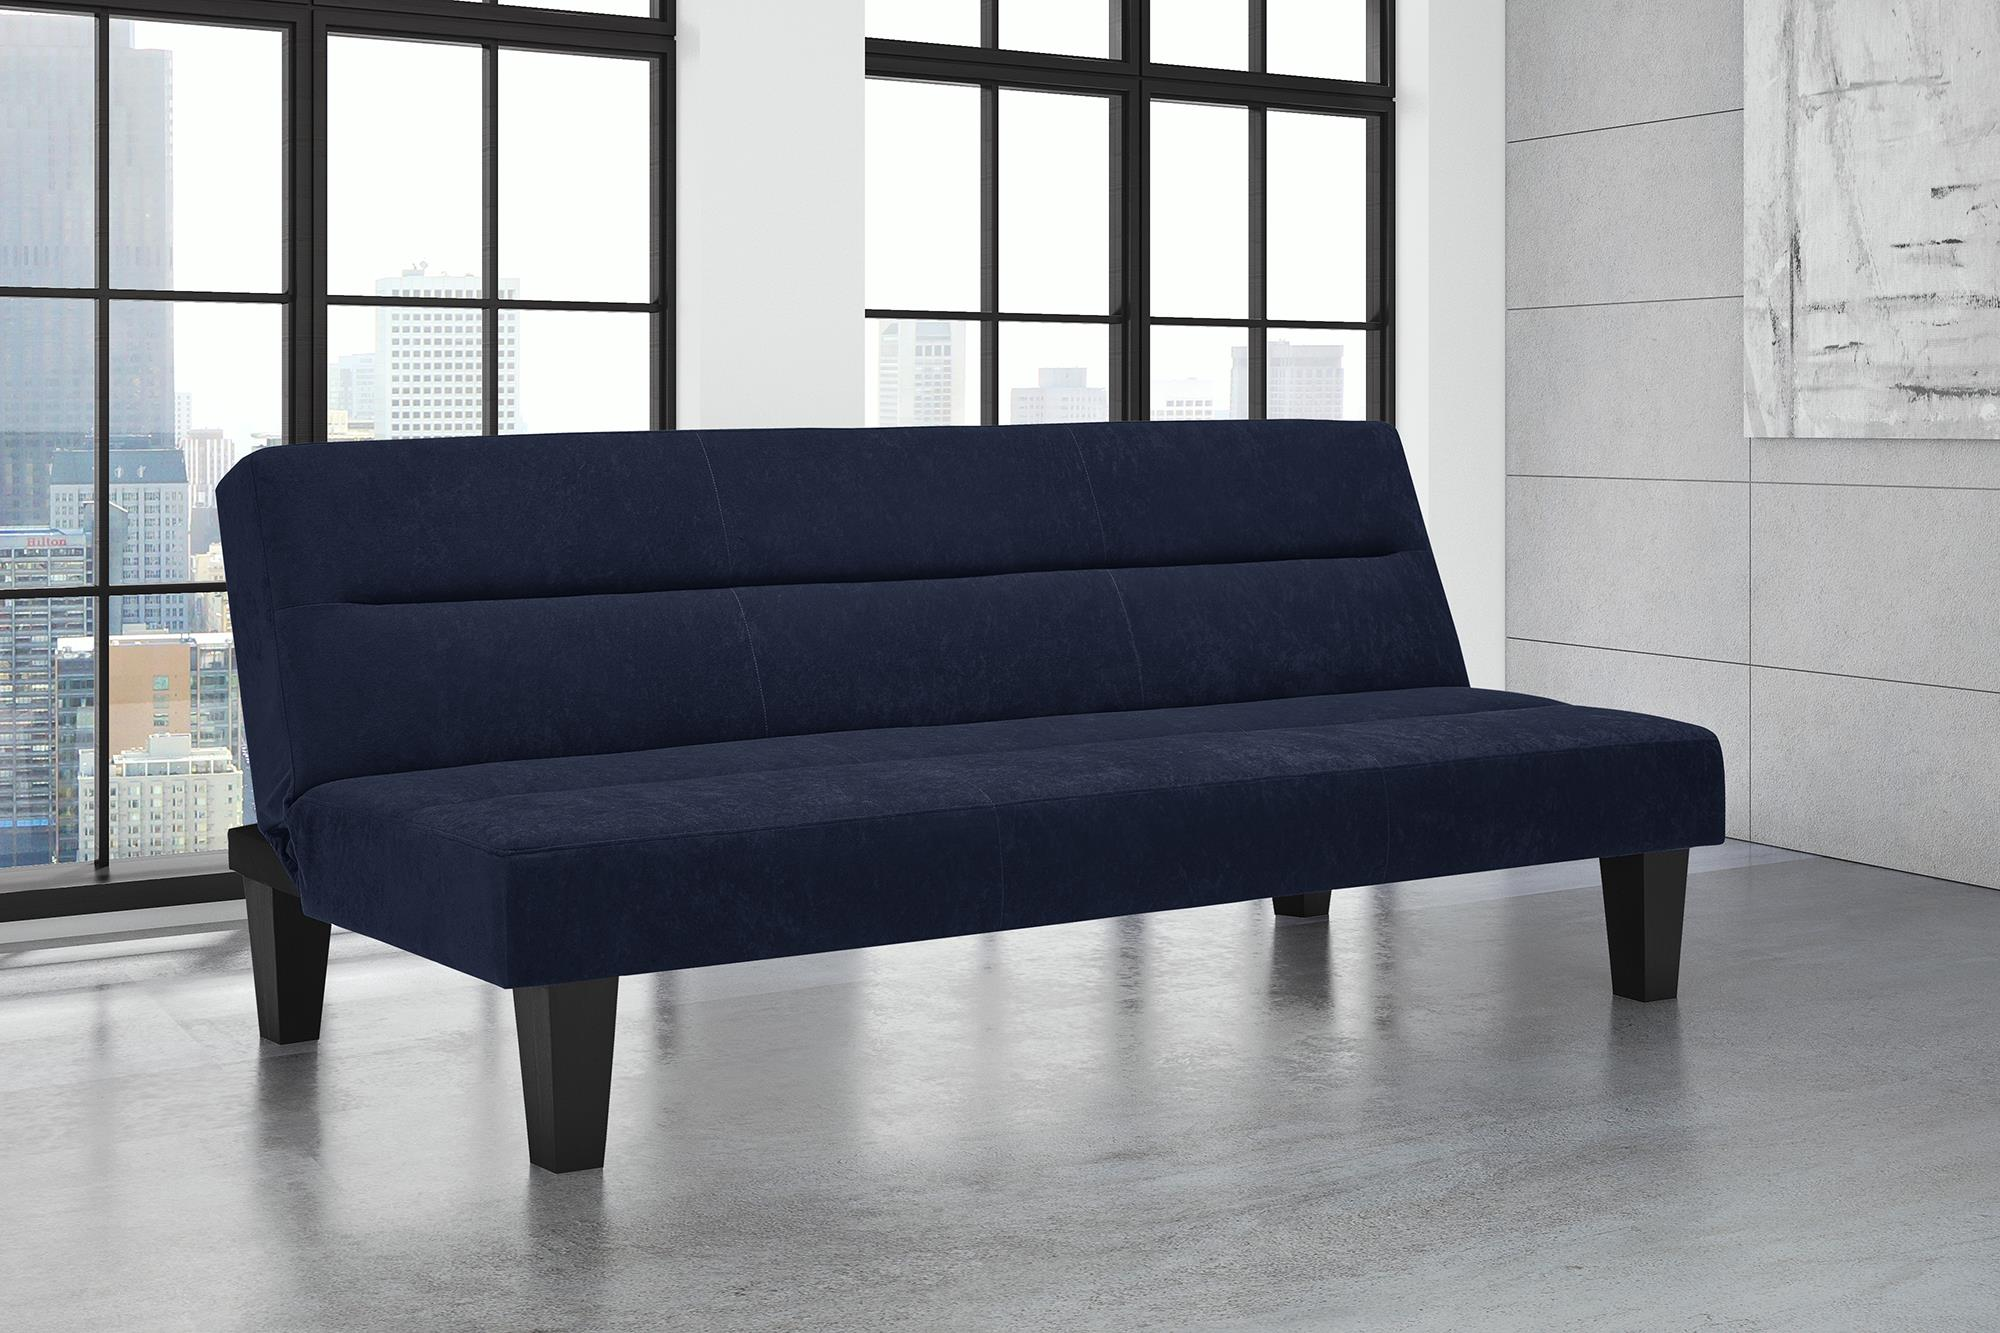 Modern Kebo Futon Sofa Couch W Microfiber Cover Lightweight Sleek Blue